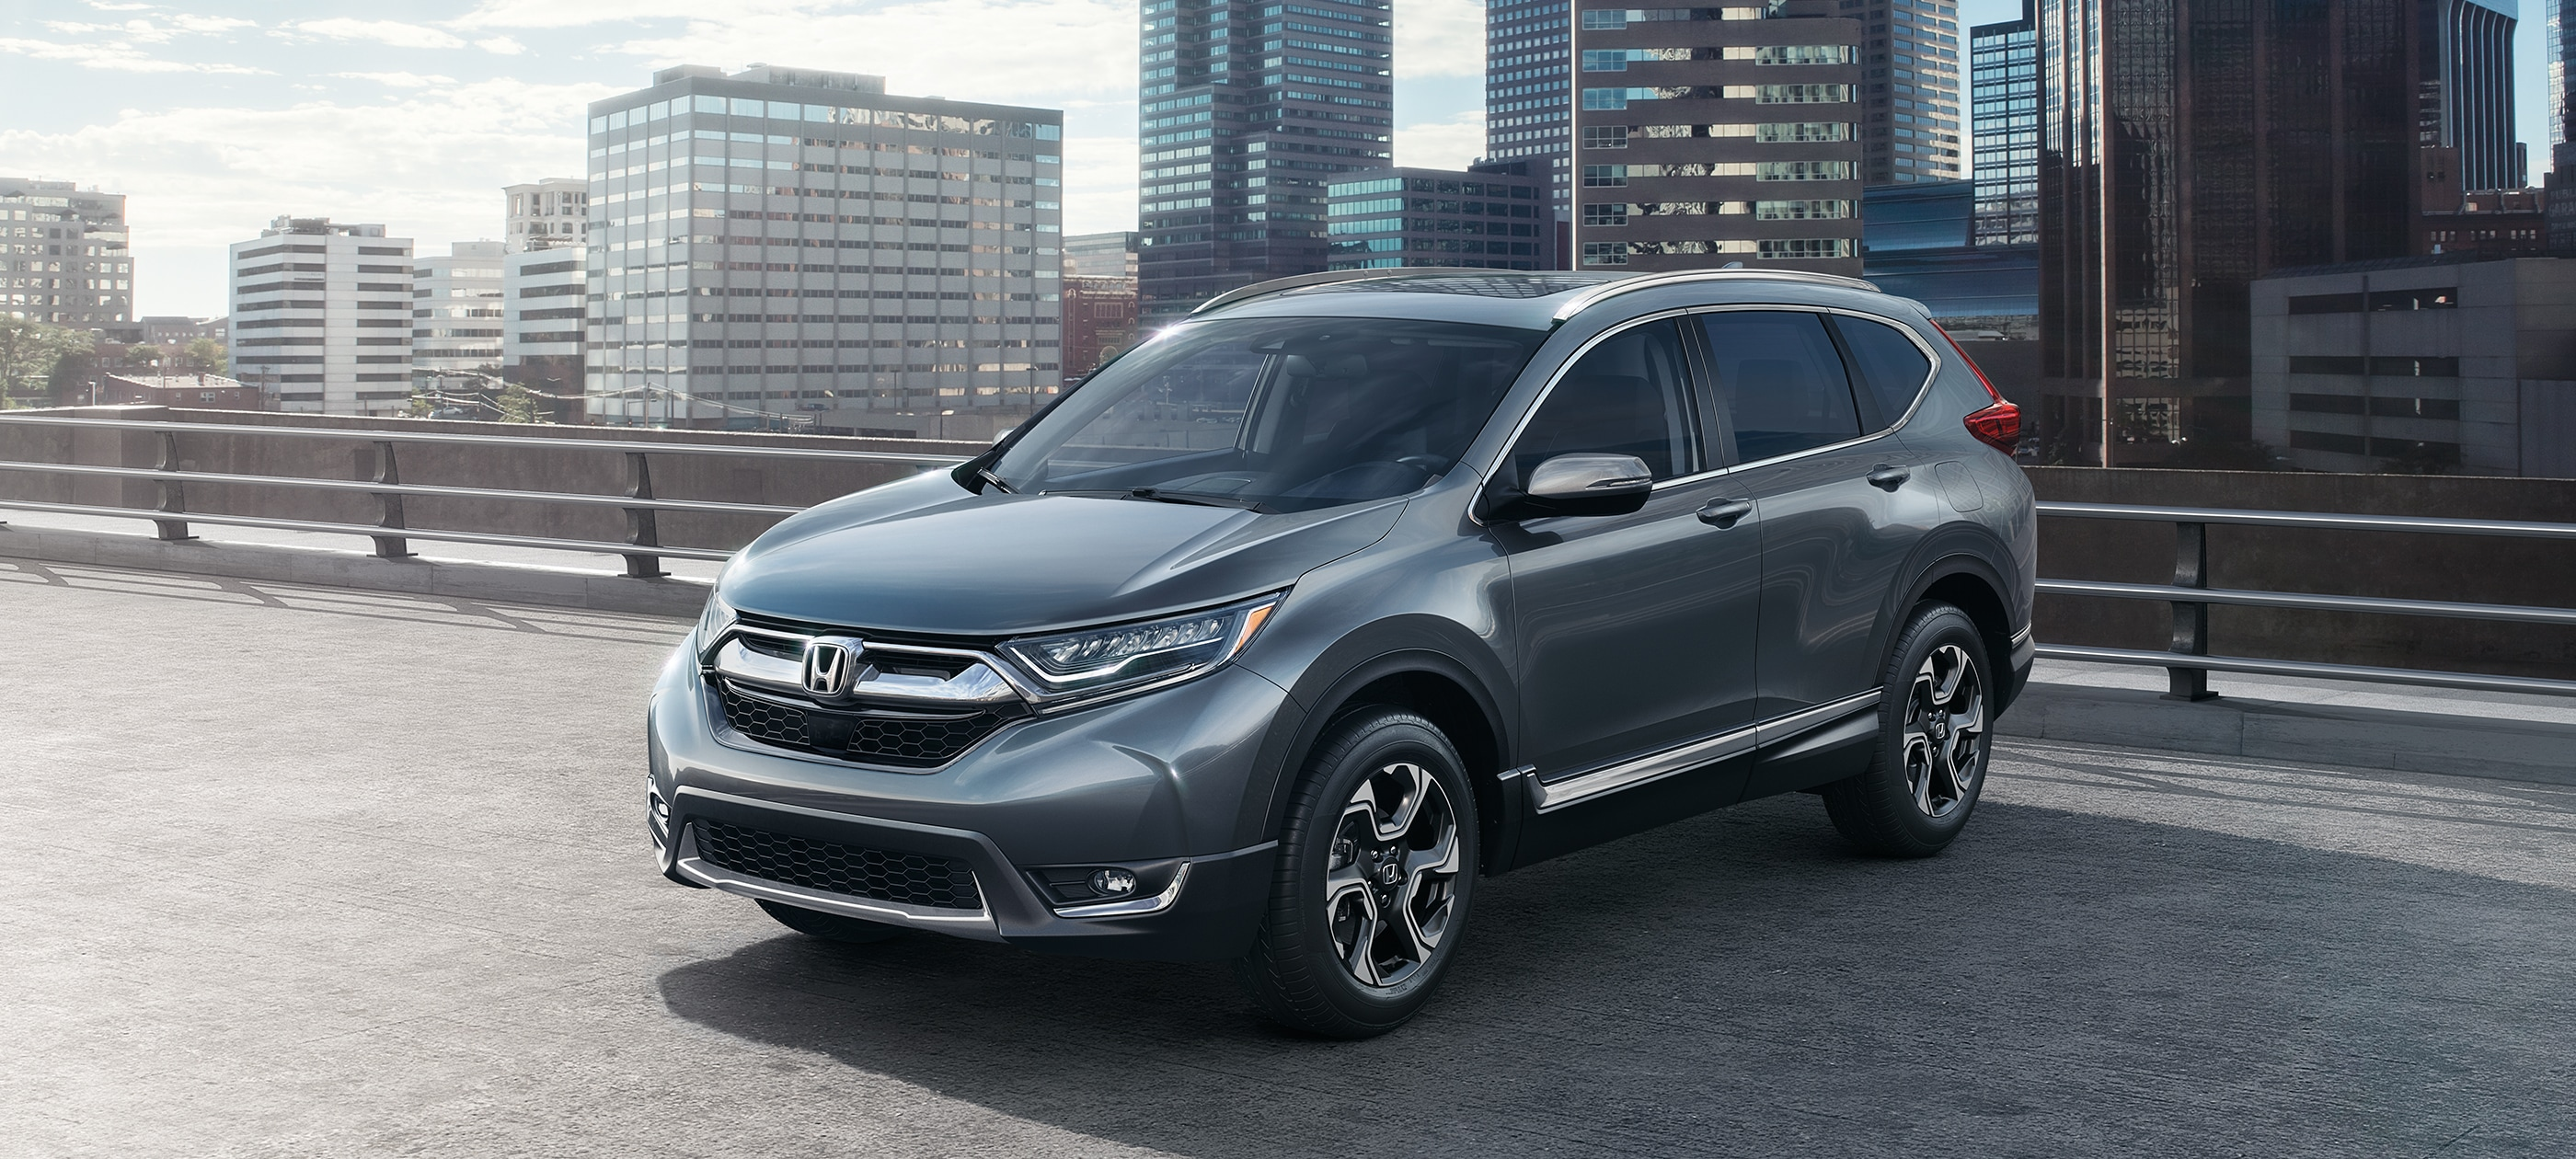 2019 Honda CR-V Deals Lansing IL